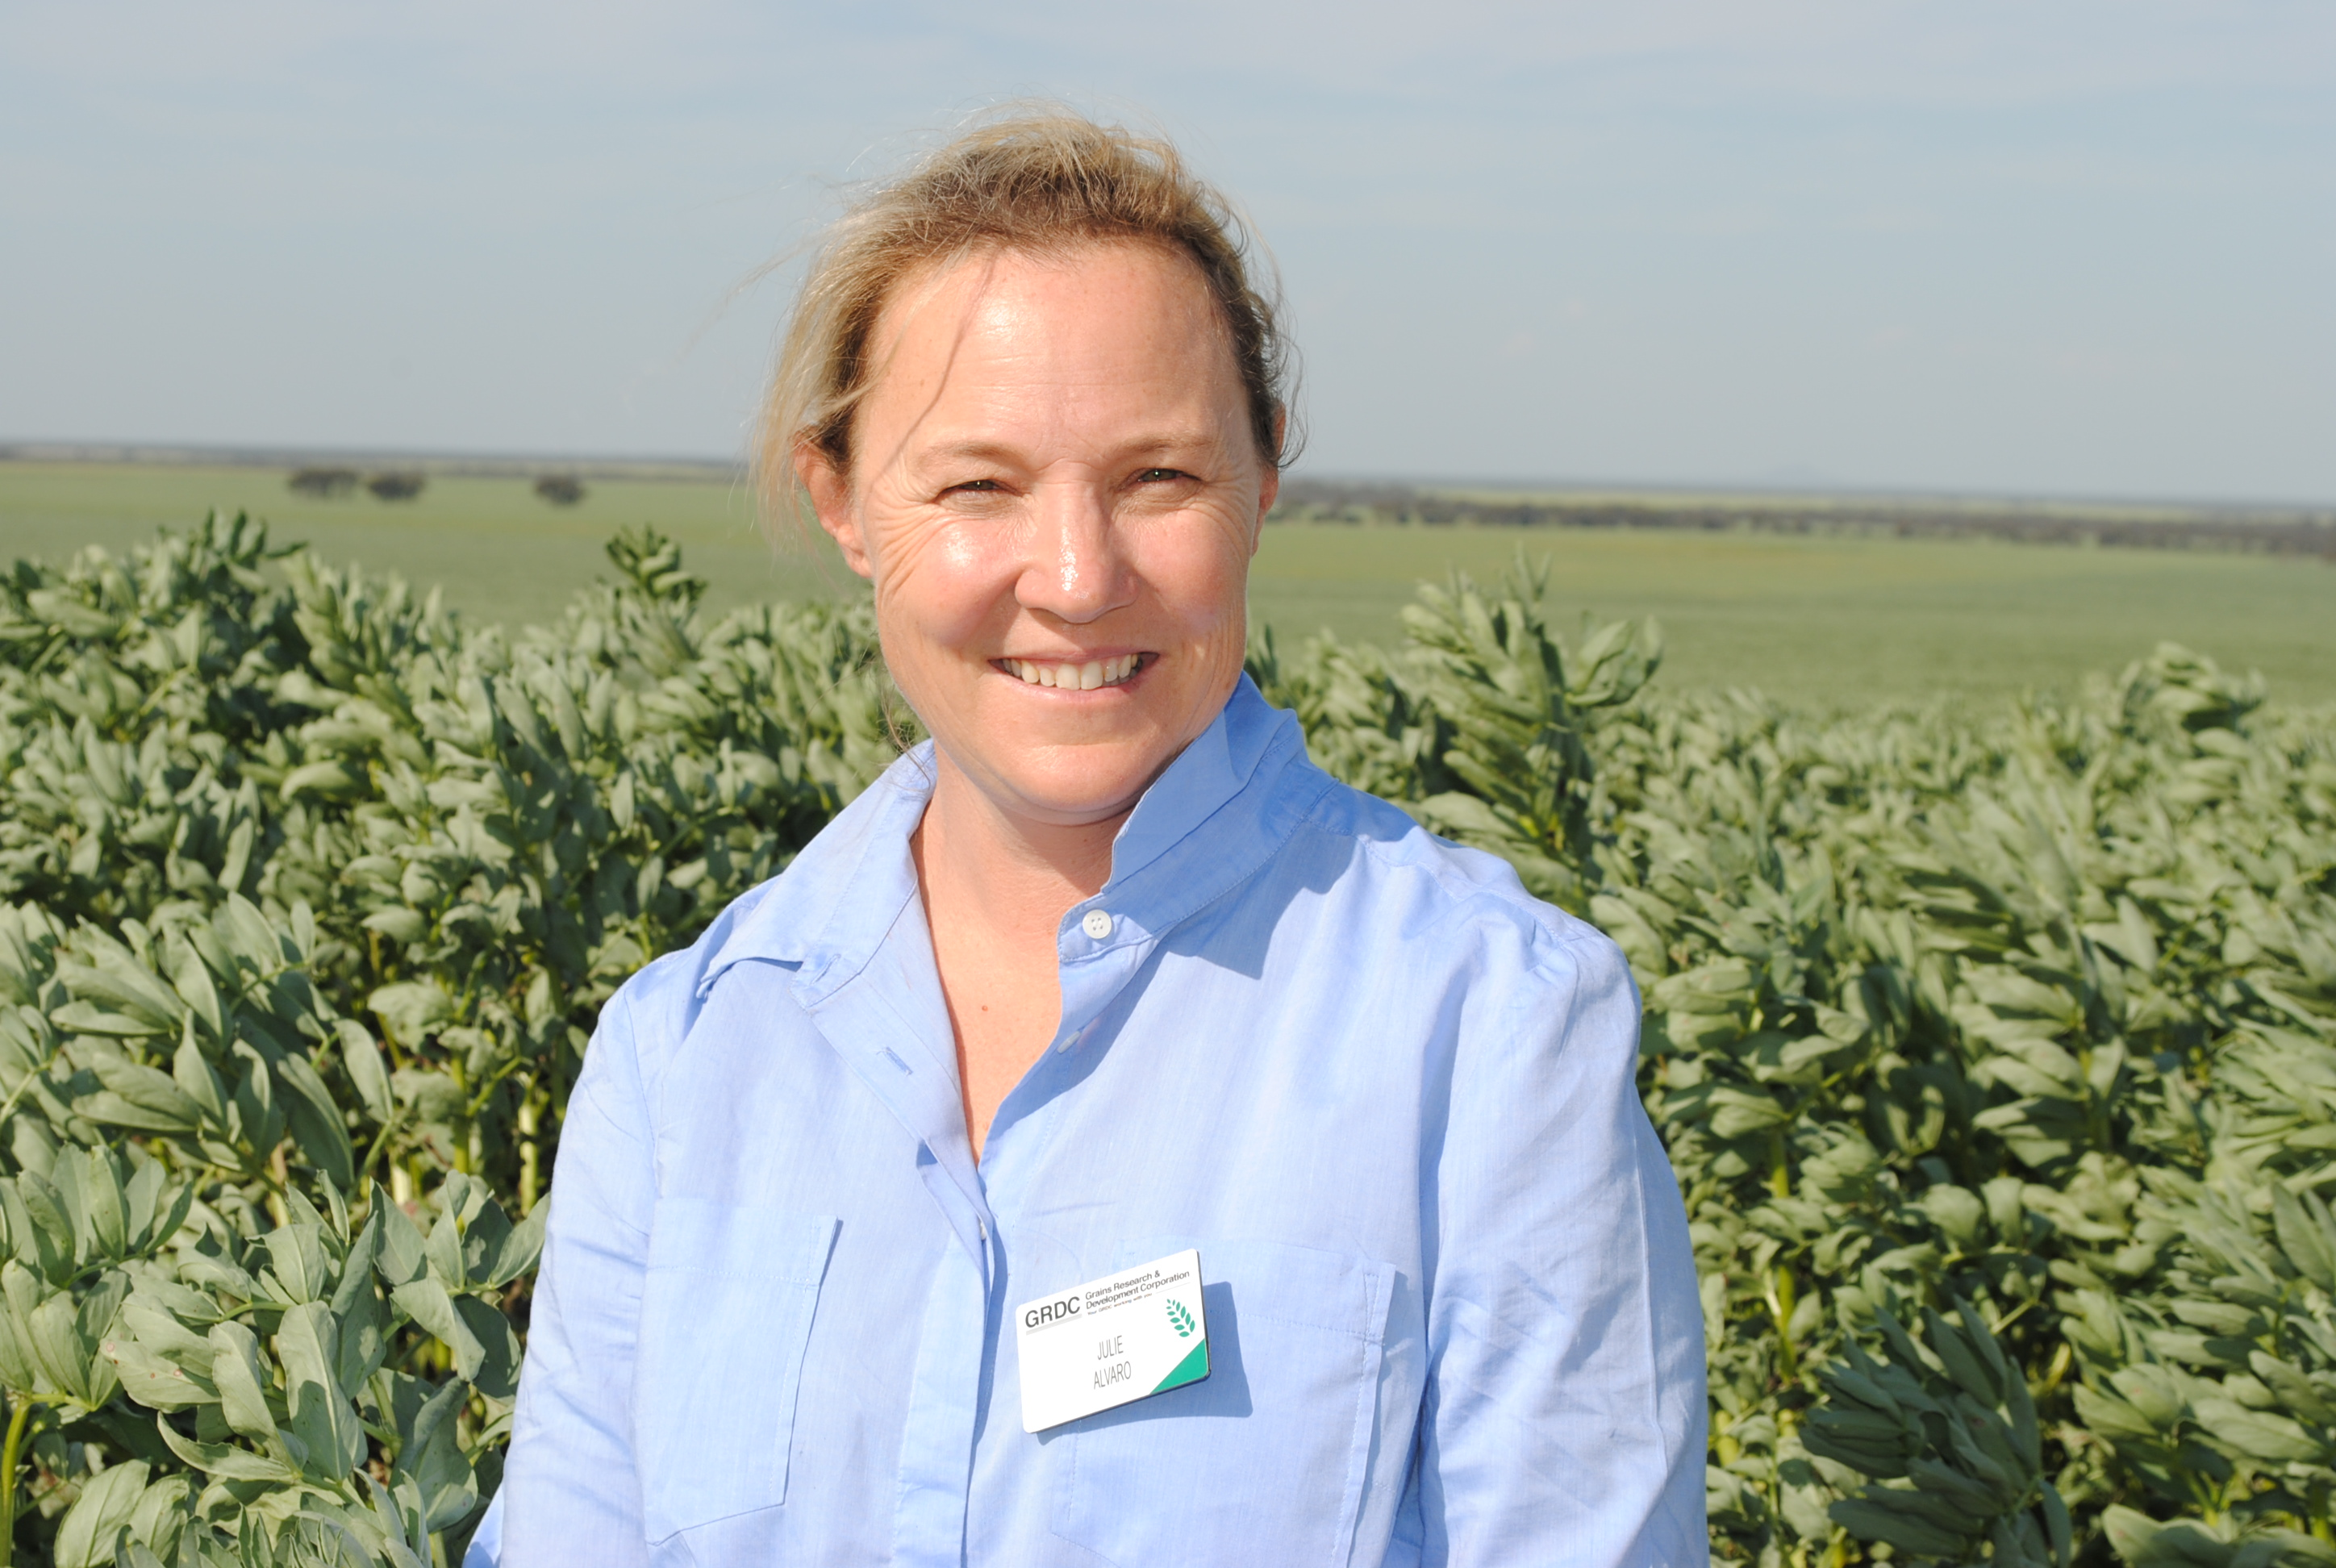 A woman standing in a field smiling, facing the camera.